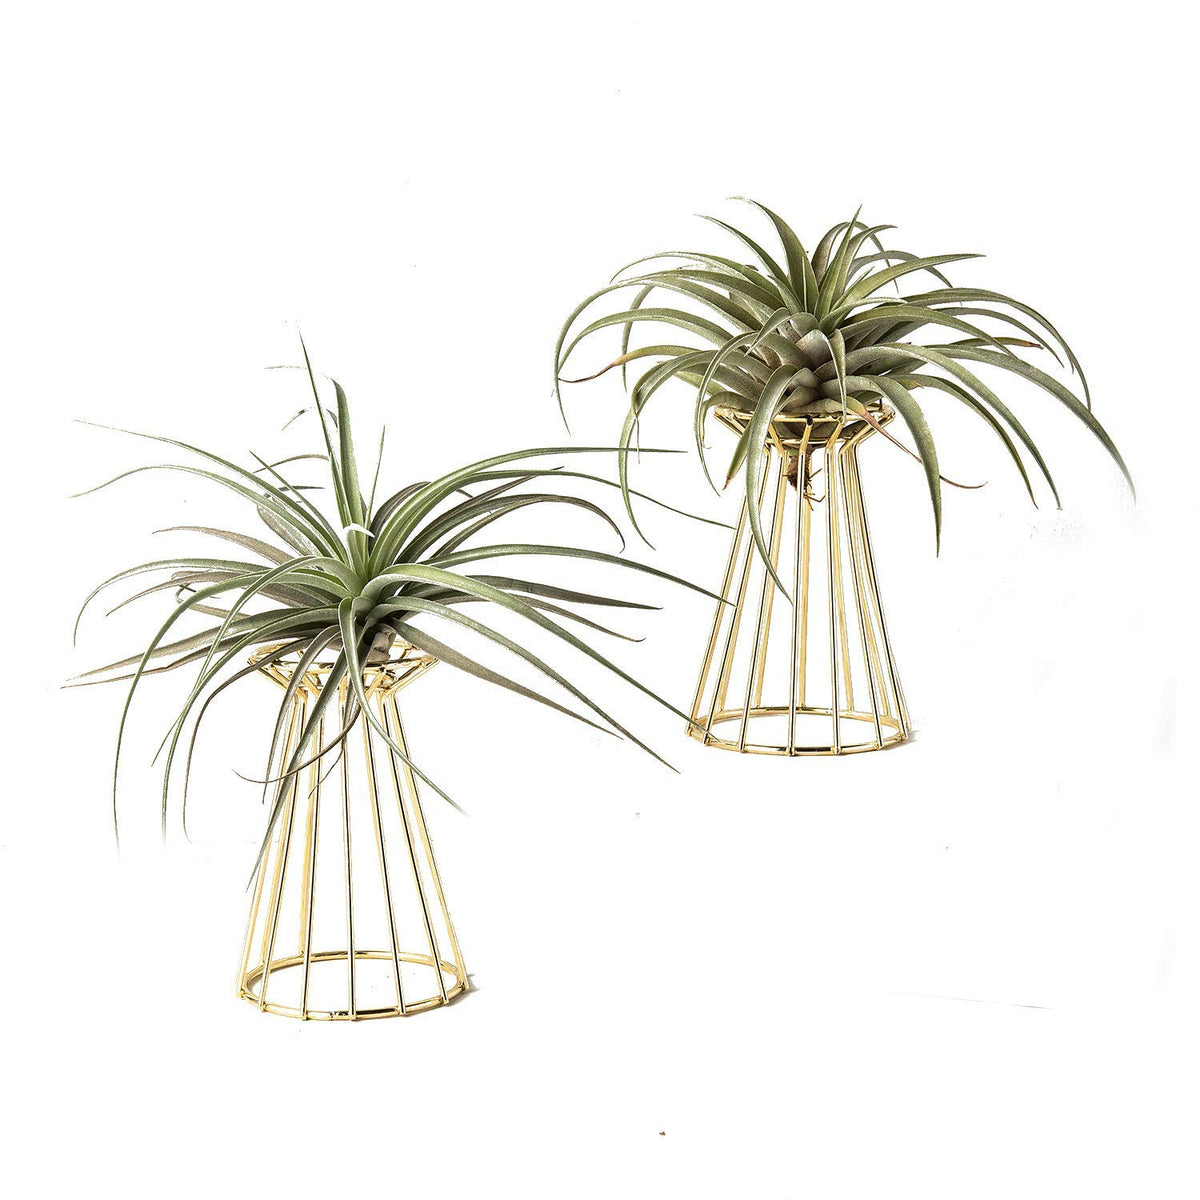 Set of 2 Decorative Air Plant Holder Tillandsia Air Plant Stand Big Streptophylla Stand